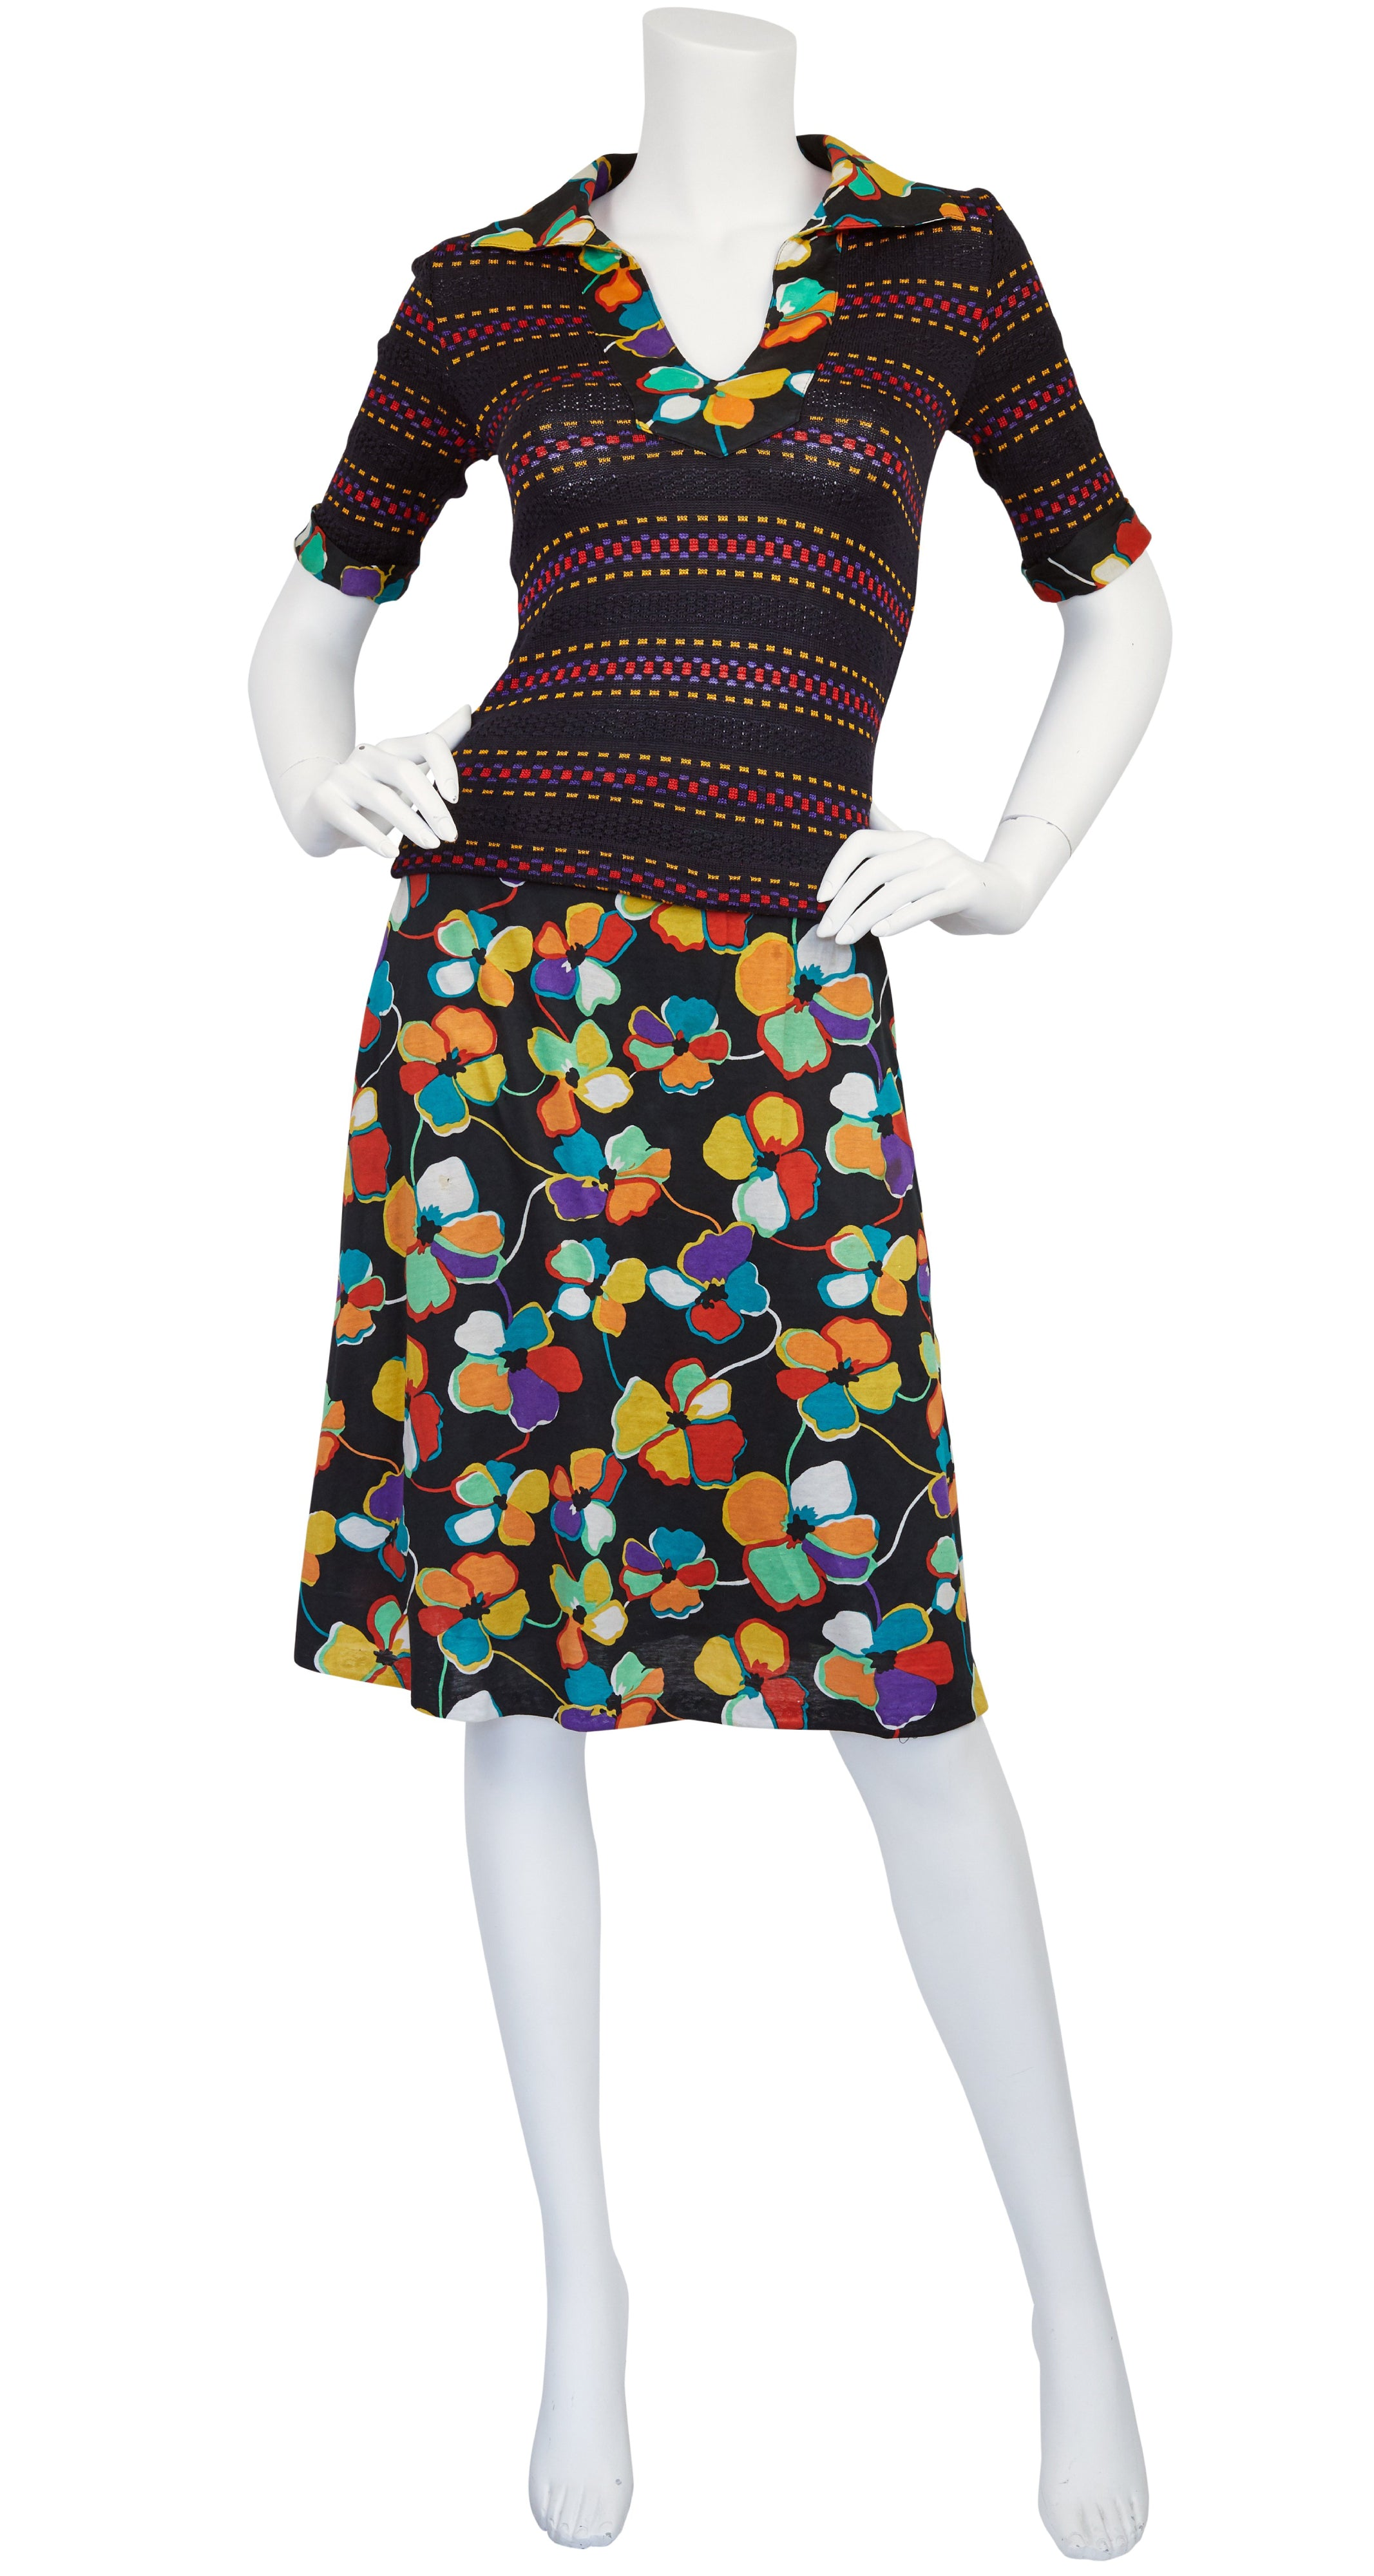 c. 1972 Knit and Floral Jersey Two-Piece Skirt Set